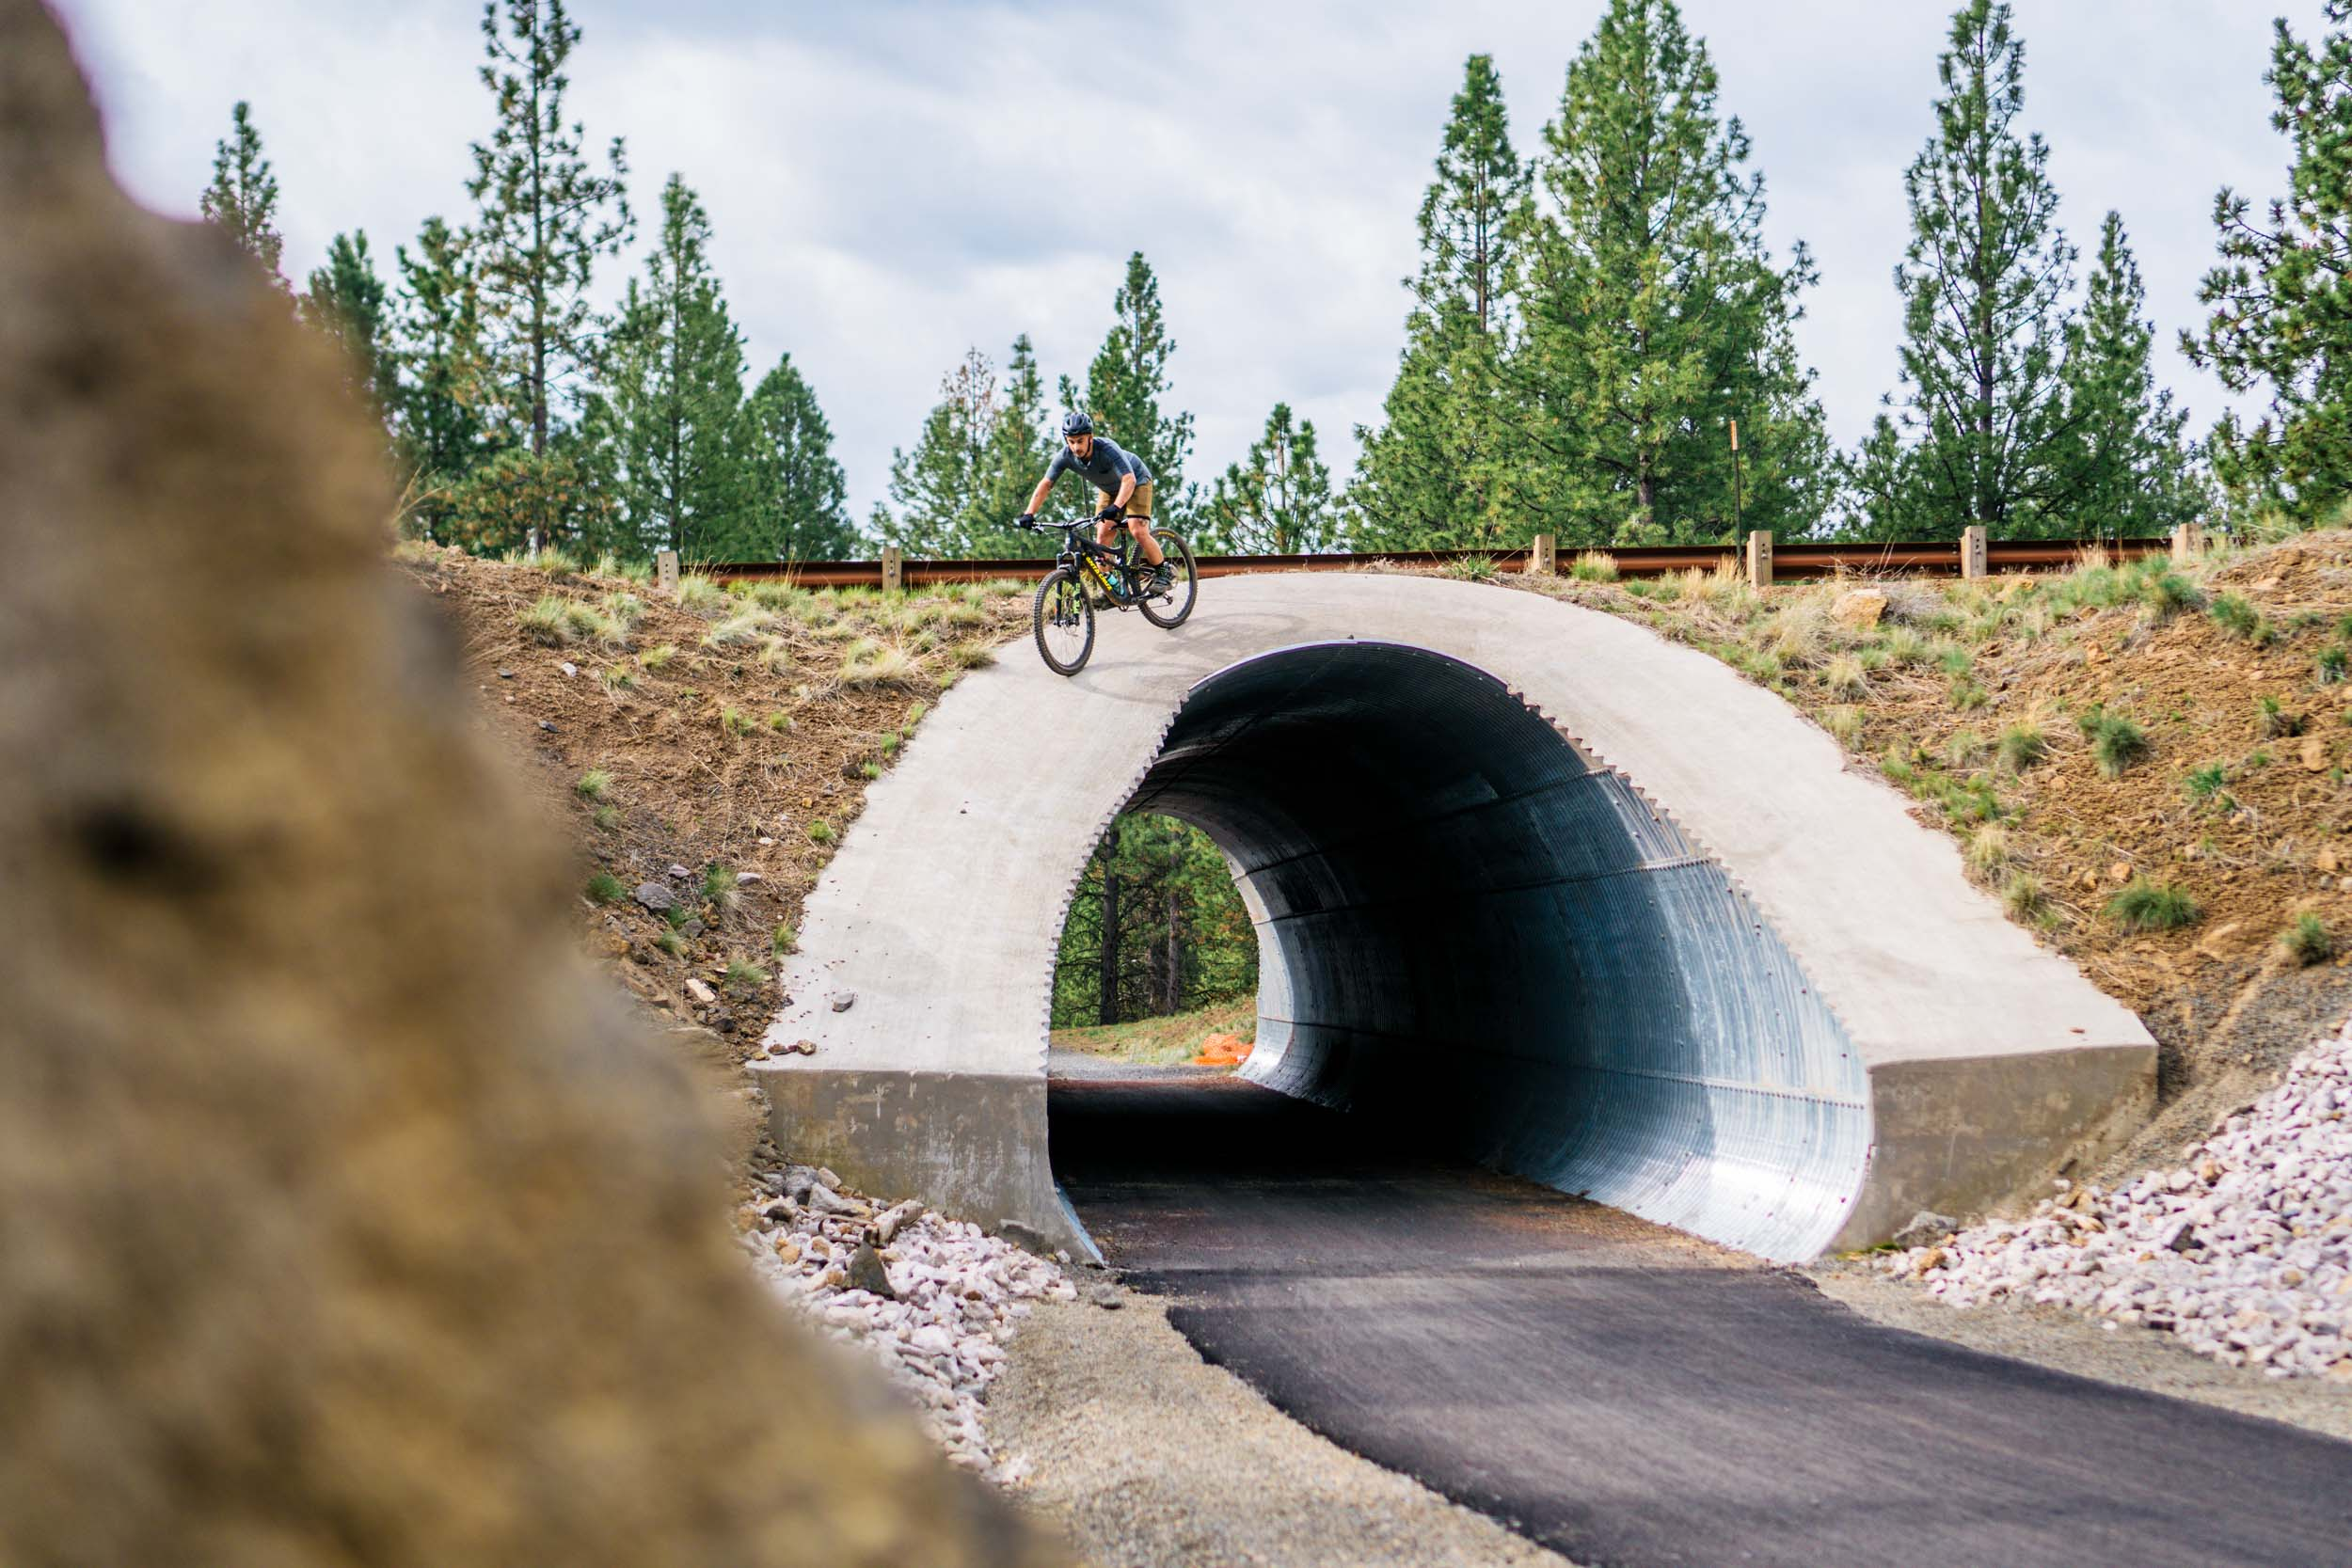 I've ridden through this tunnel a lot and never scoped the line until now.